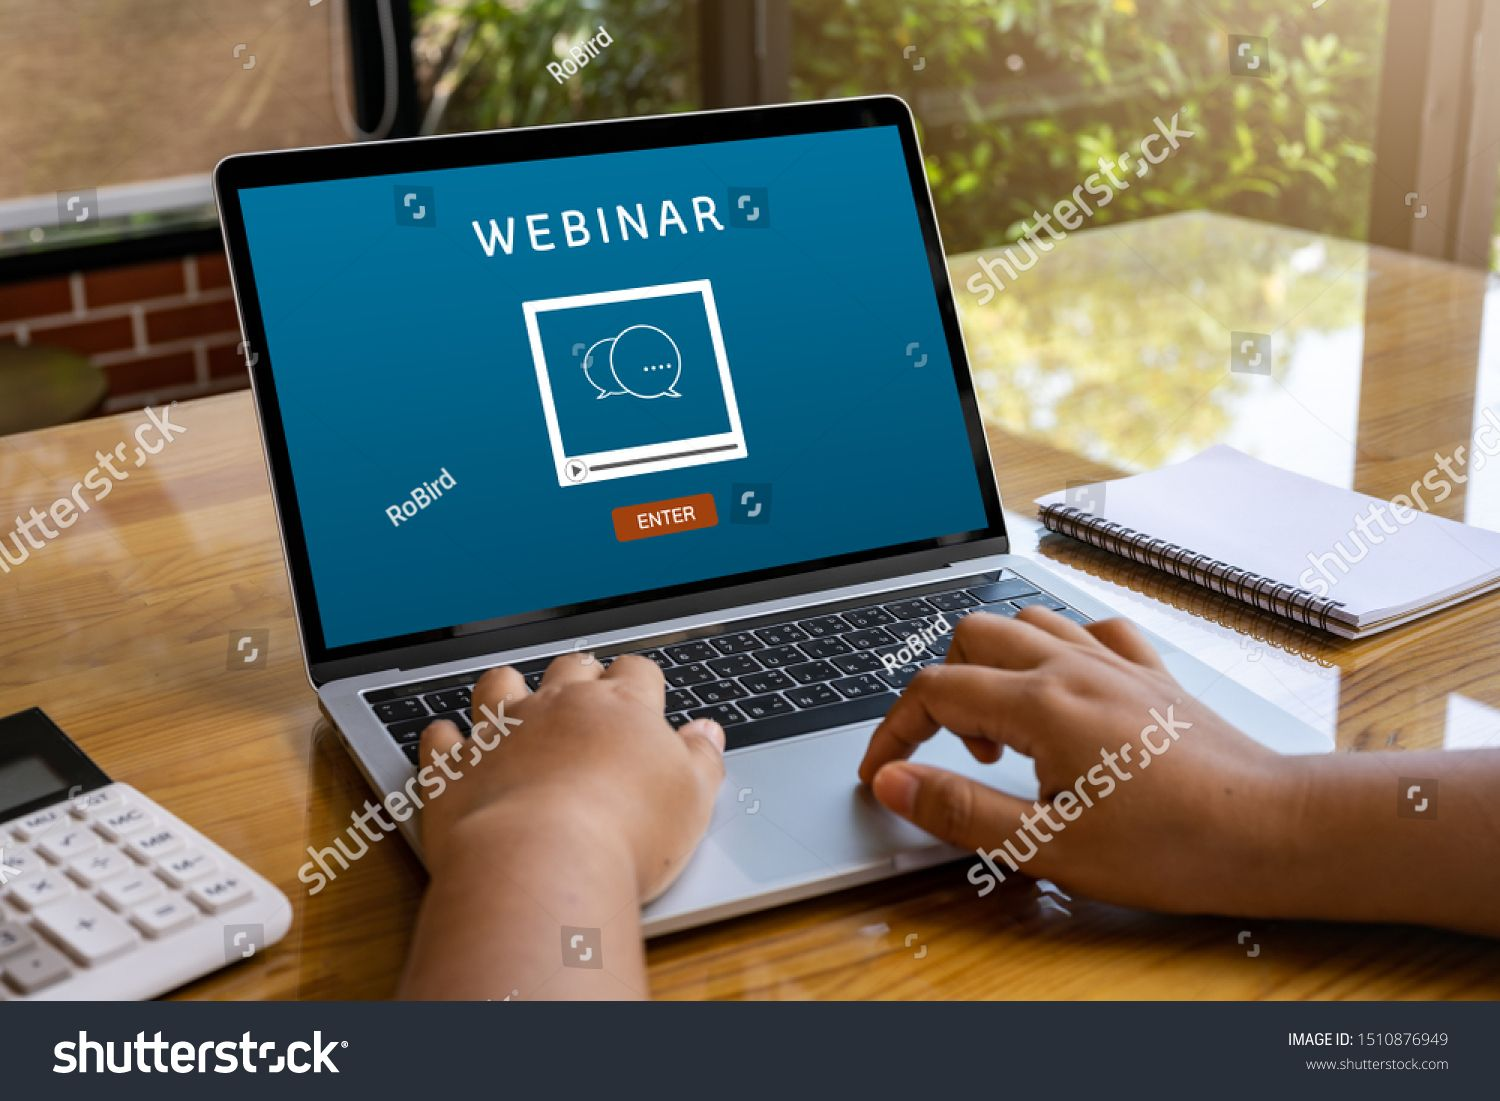 Laptop Computer With Webinar E Business Browsing Connection And Cloud Online Technology Webcast Concept Business Laptop Computers Photo Editing Wedding Vector